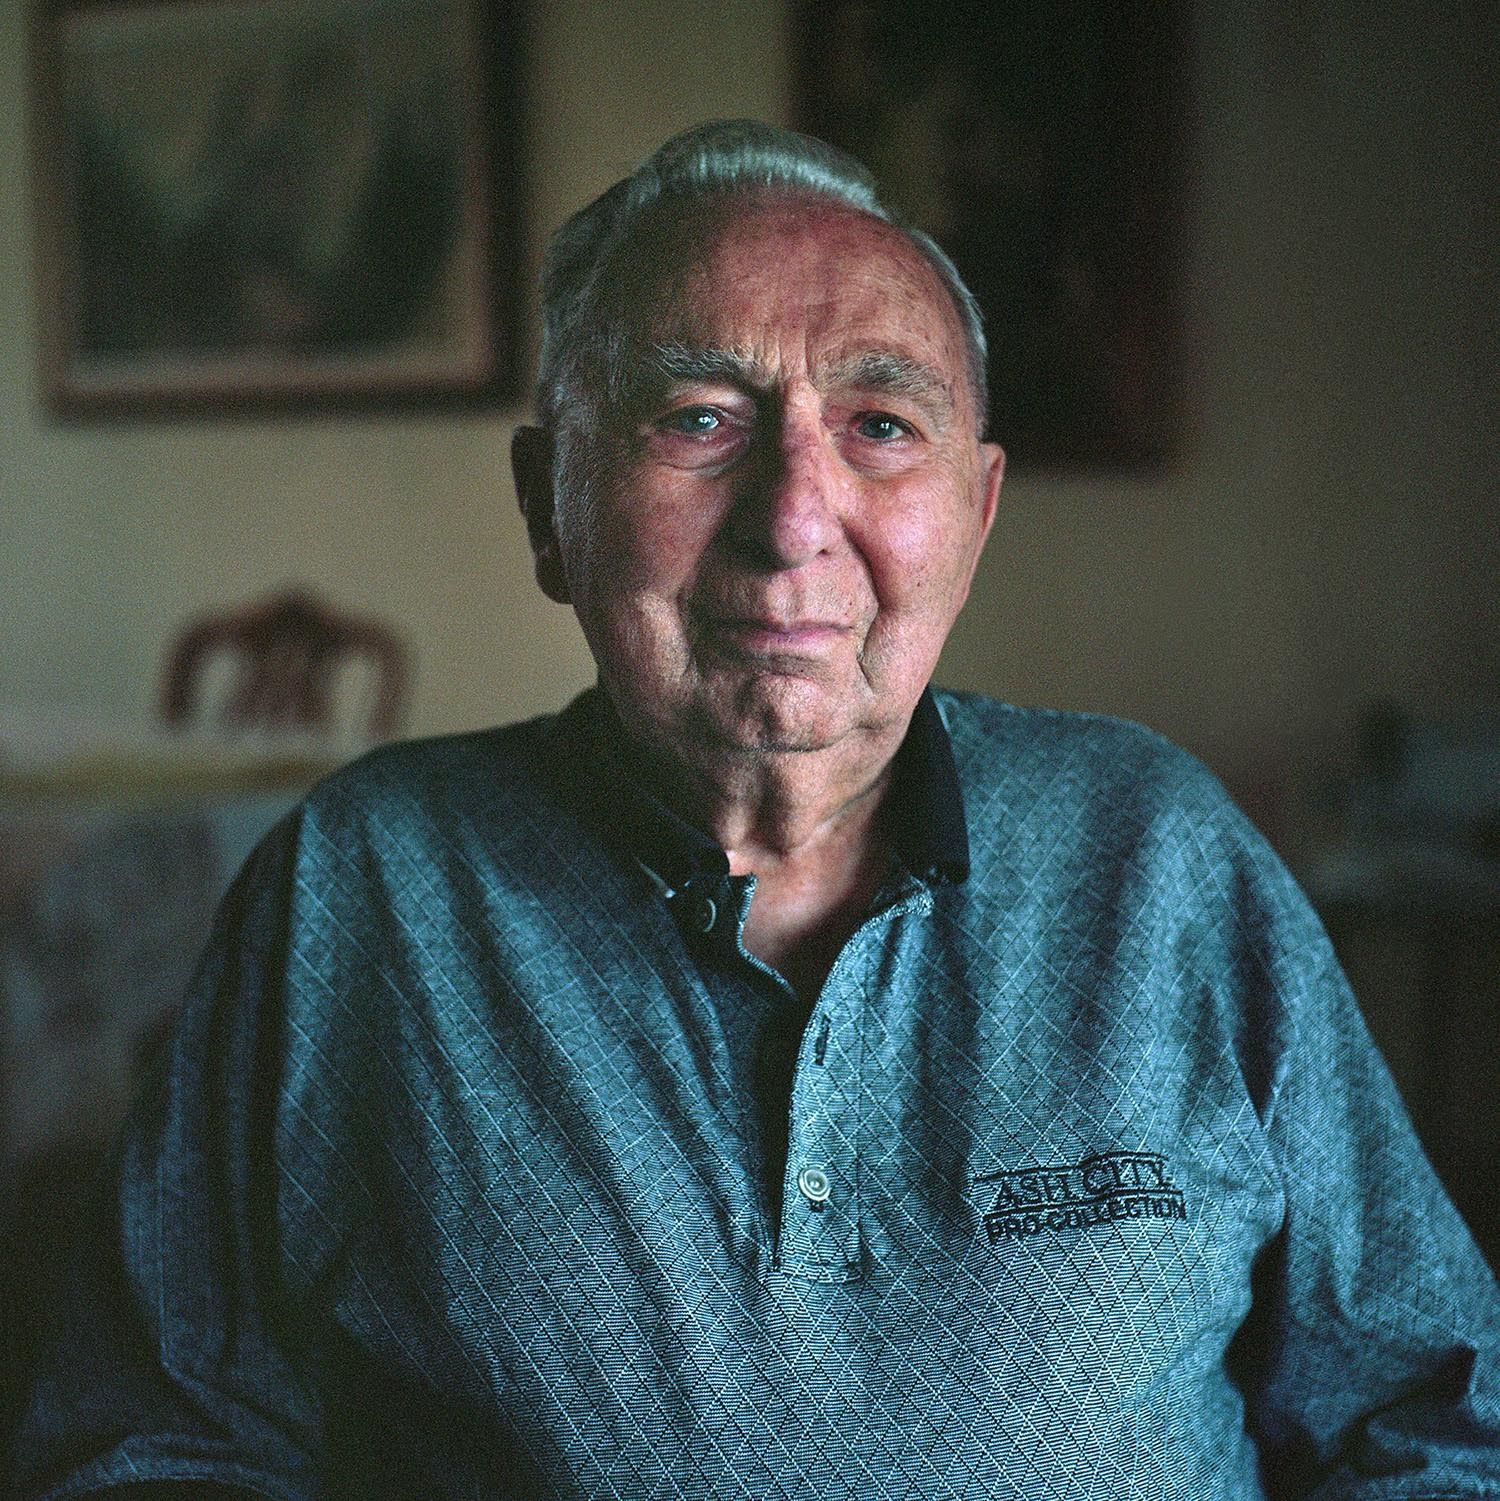 Portrait of my father at 96, 2017. He bought our first Diacord circa 1958. Aperture about f5.6. Portra 160.